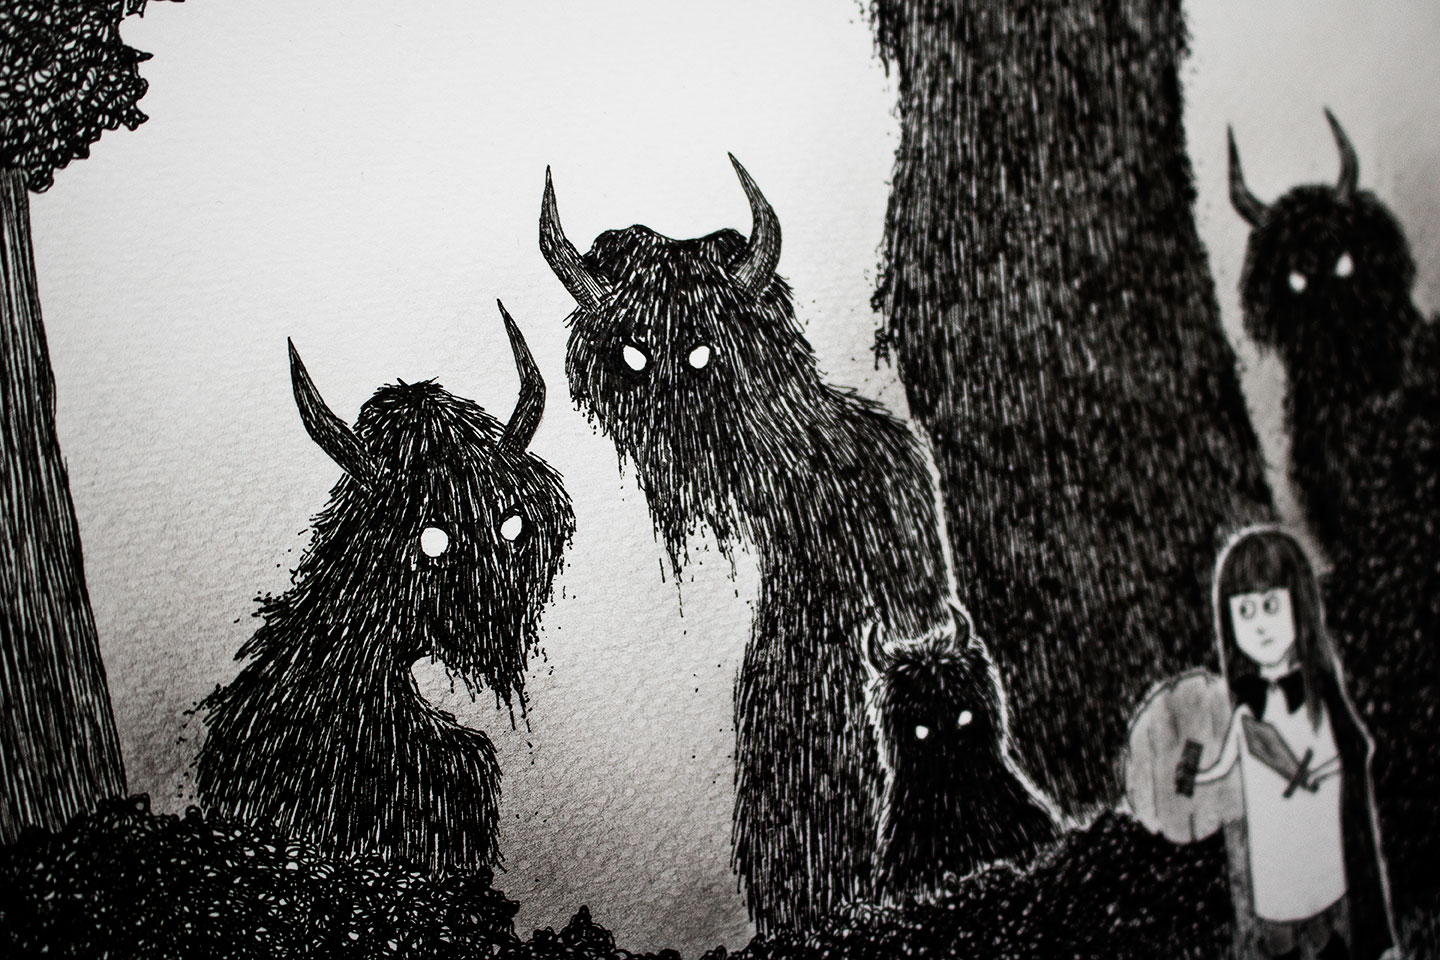 Dark monsters - detail from illustration by Kira Bang-Olsson